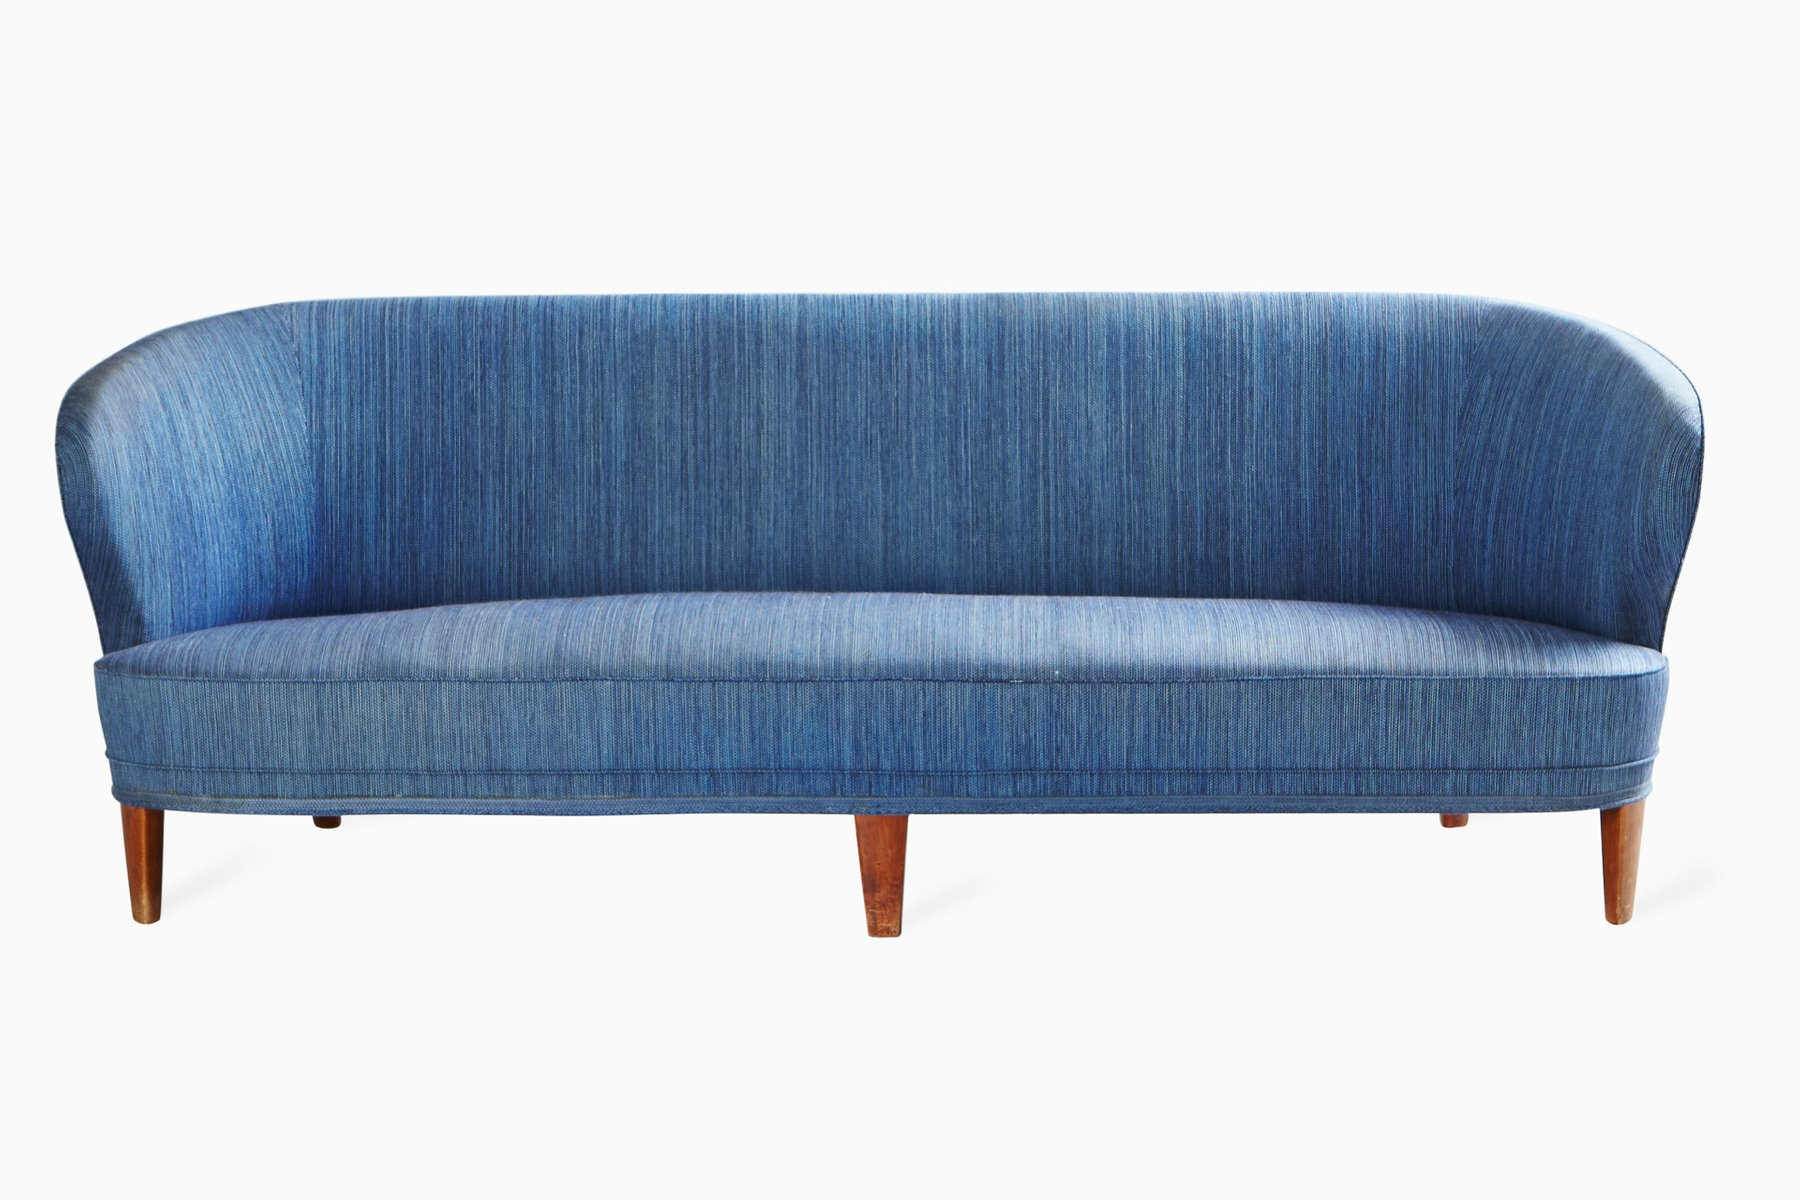 berlin sofa by carl malmsten for sale at pamono. Black Bedroom Furniture Sets. Home Design Ideas